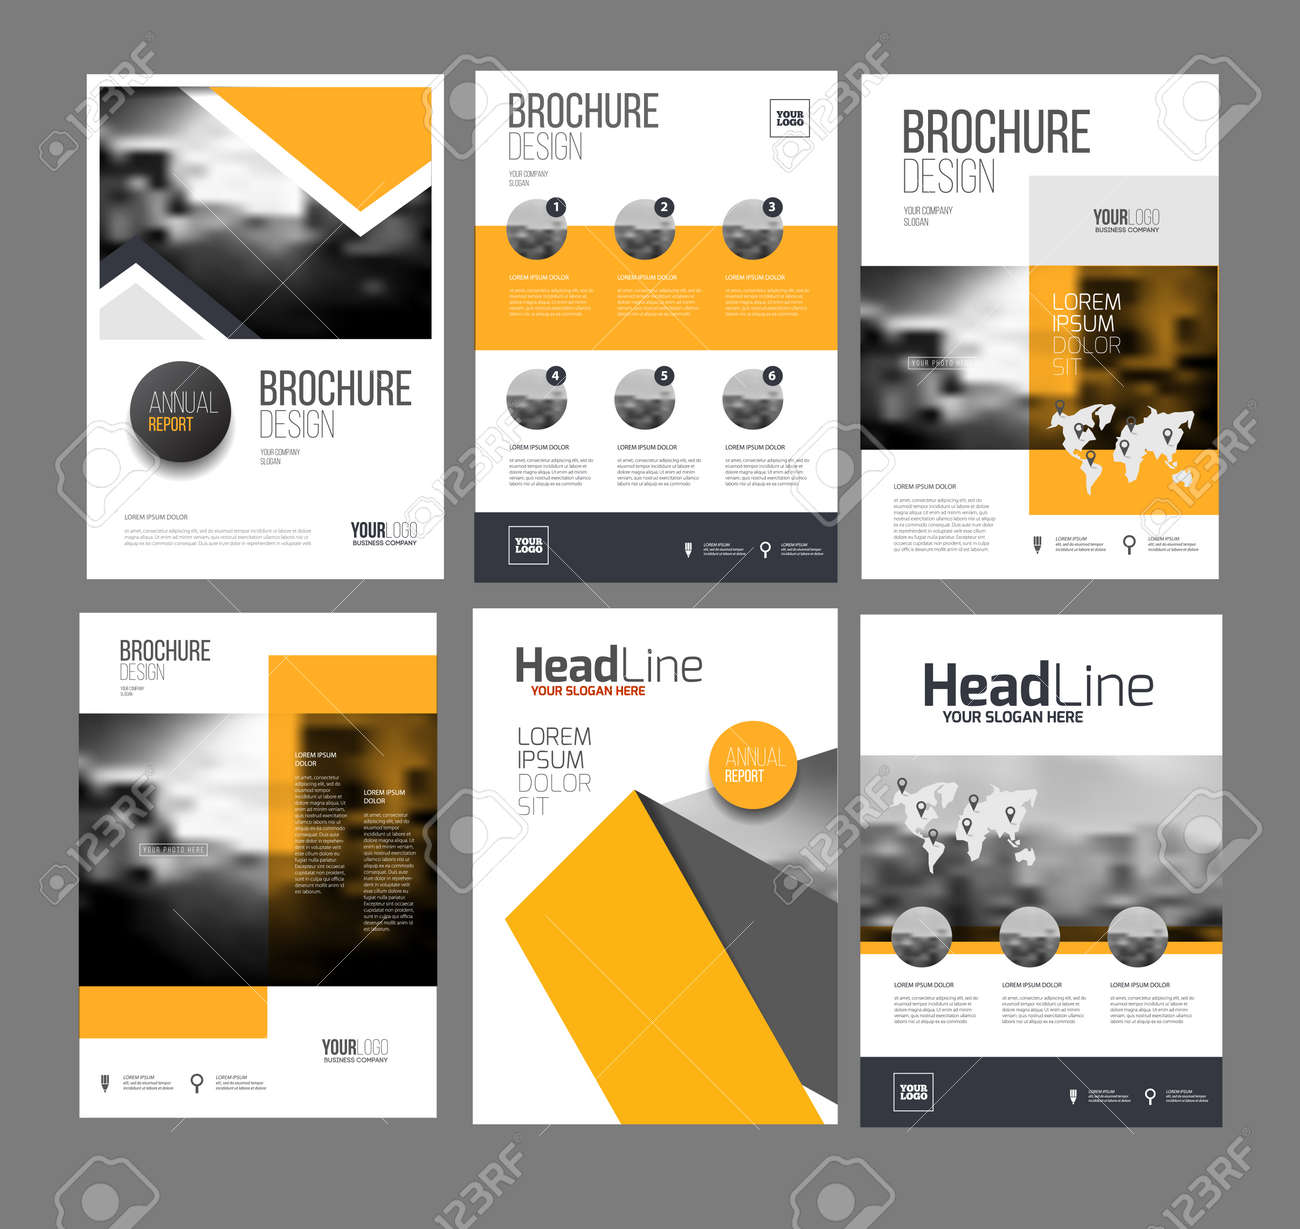 modern brochure design template vector set 6 annual report layout